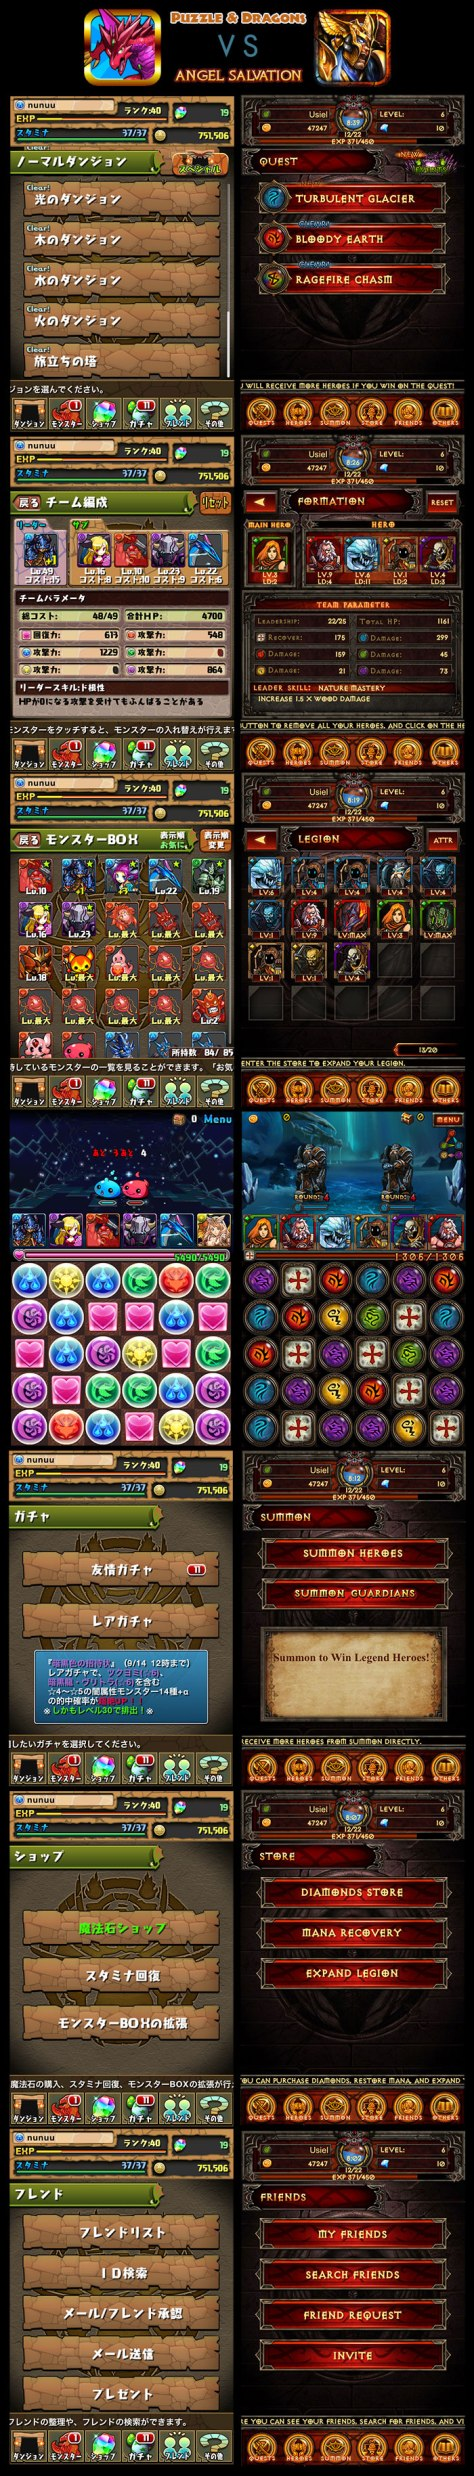 Puzzle & Dragons versus Angel Salvation